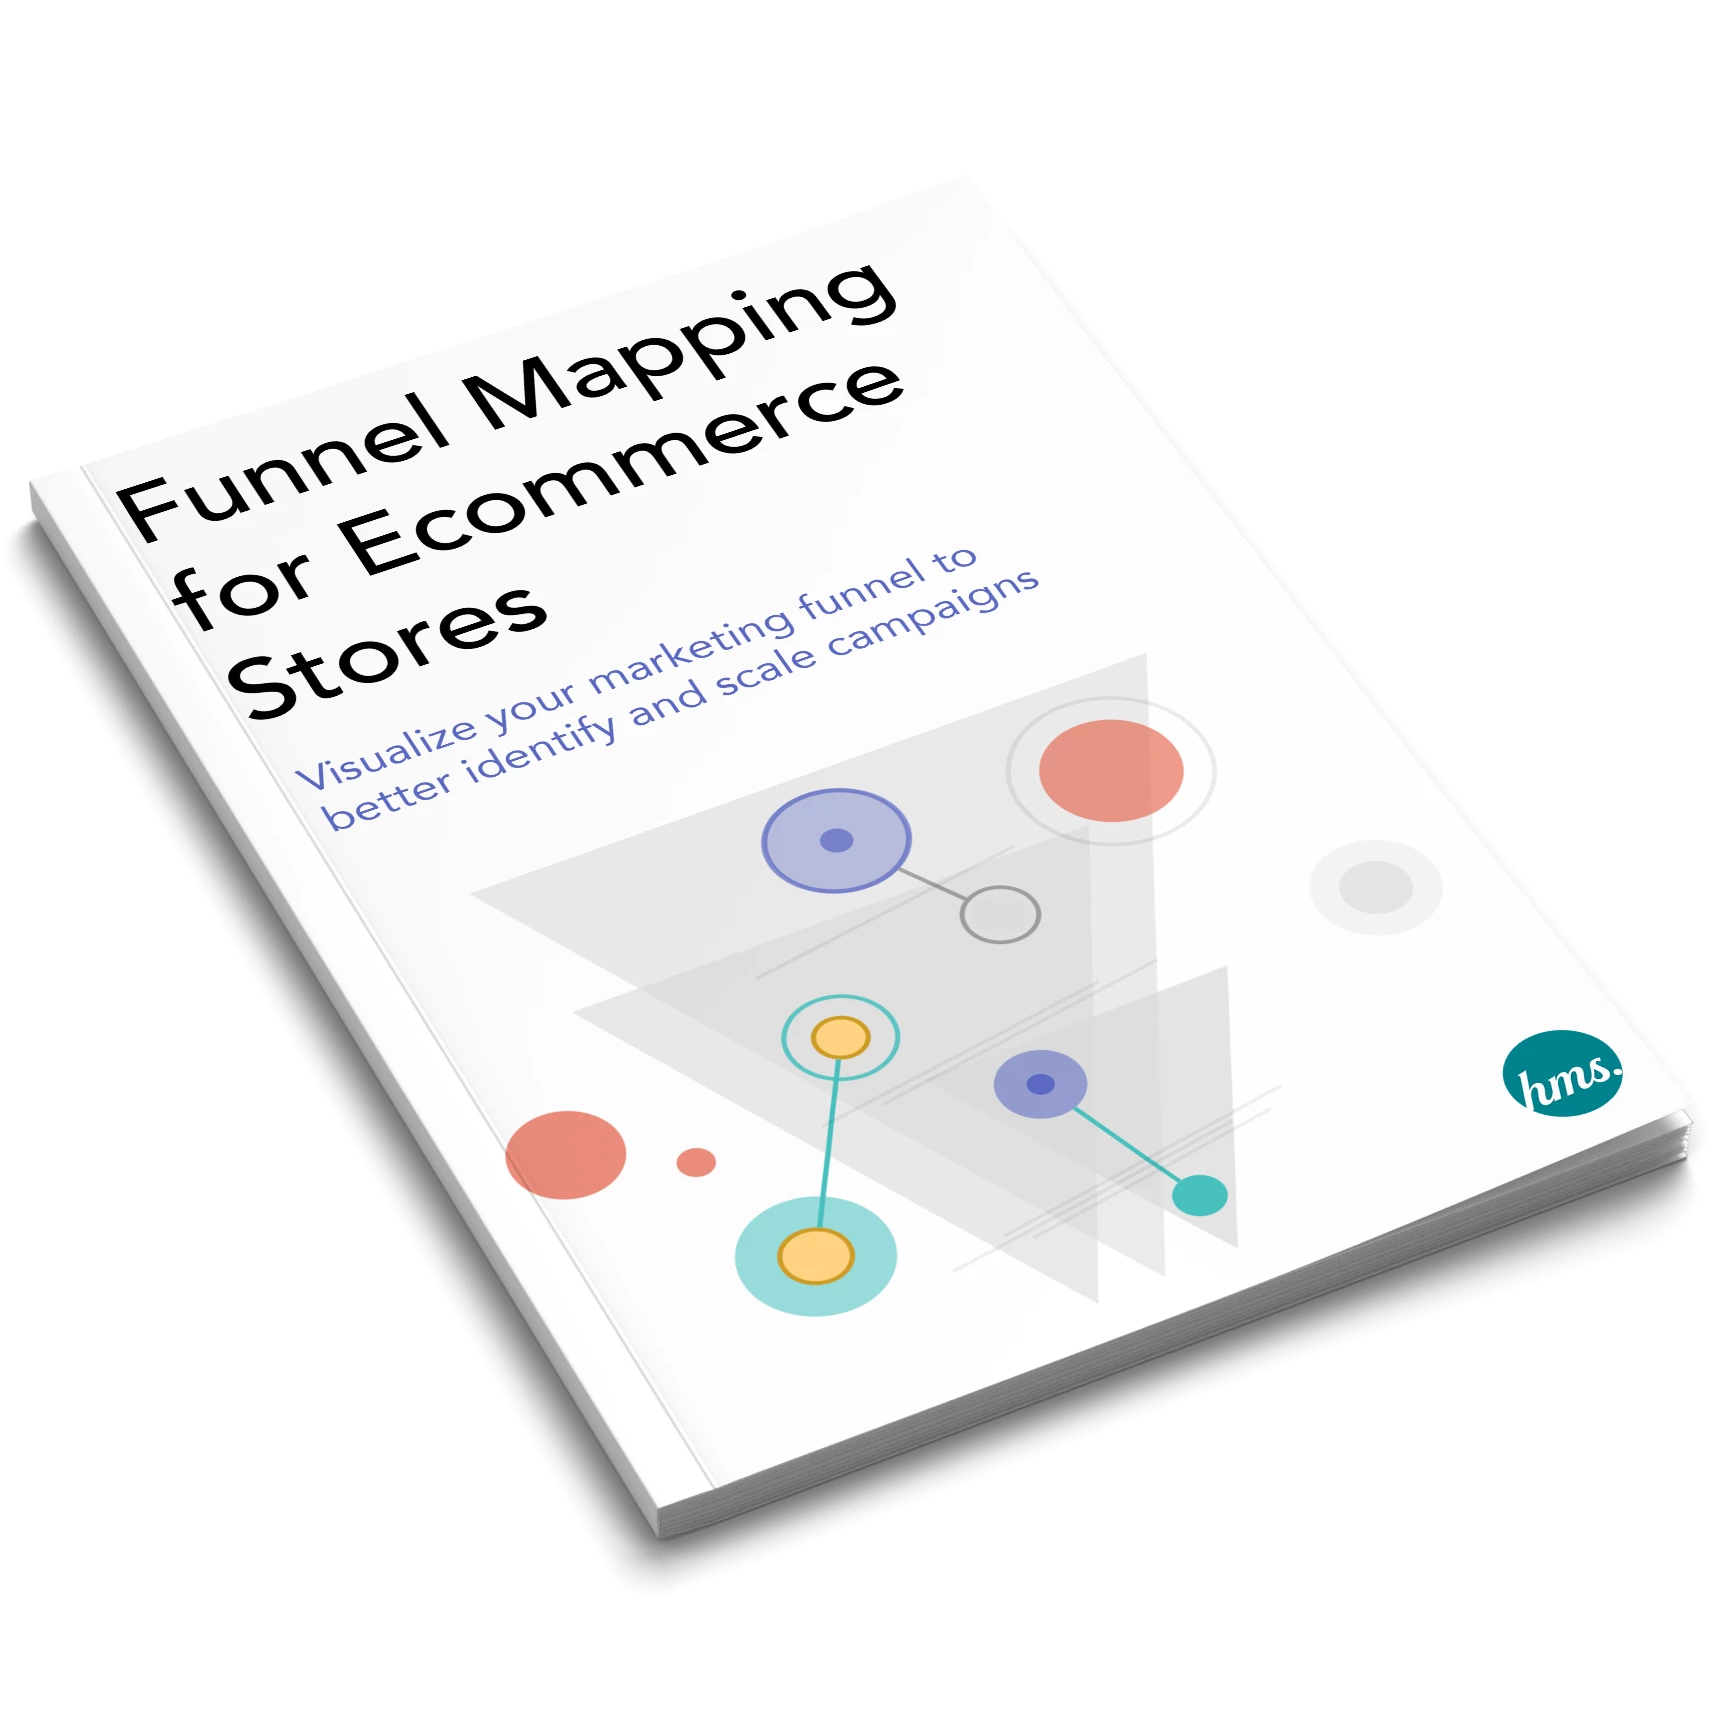 Funnel Mapping for Ecommerce